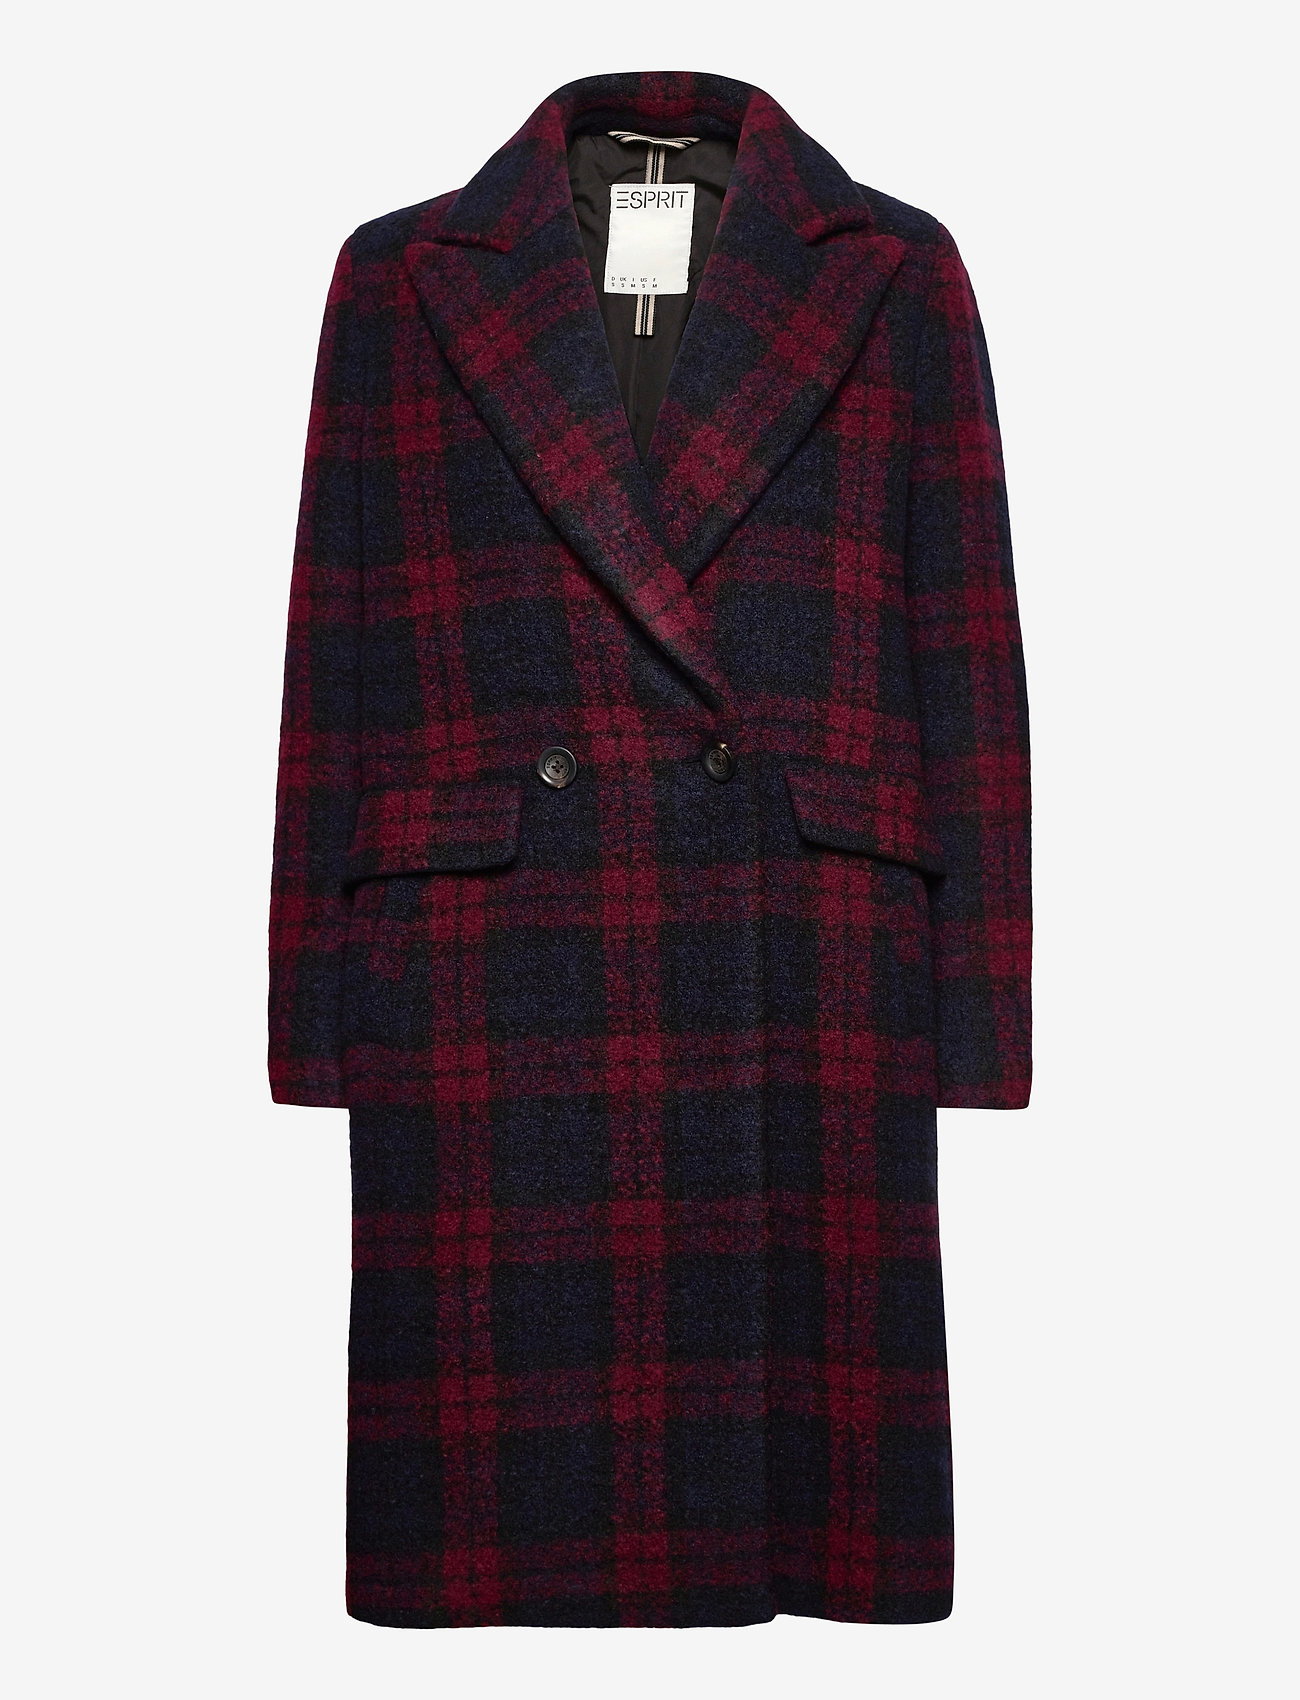 Esprit Casual - Coats woven - manteaux en laine - red 3 - 0